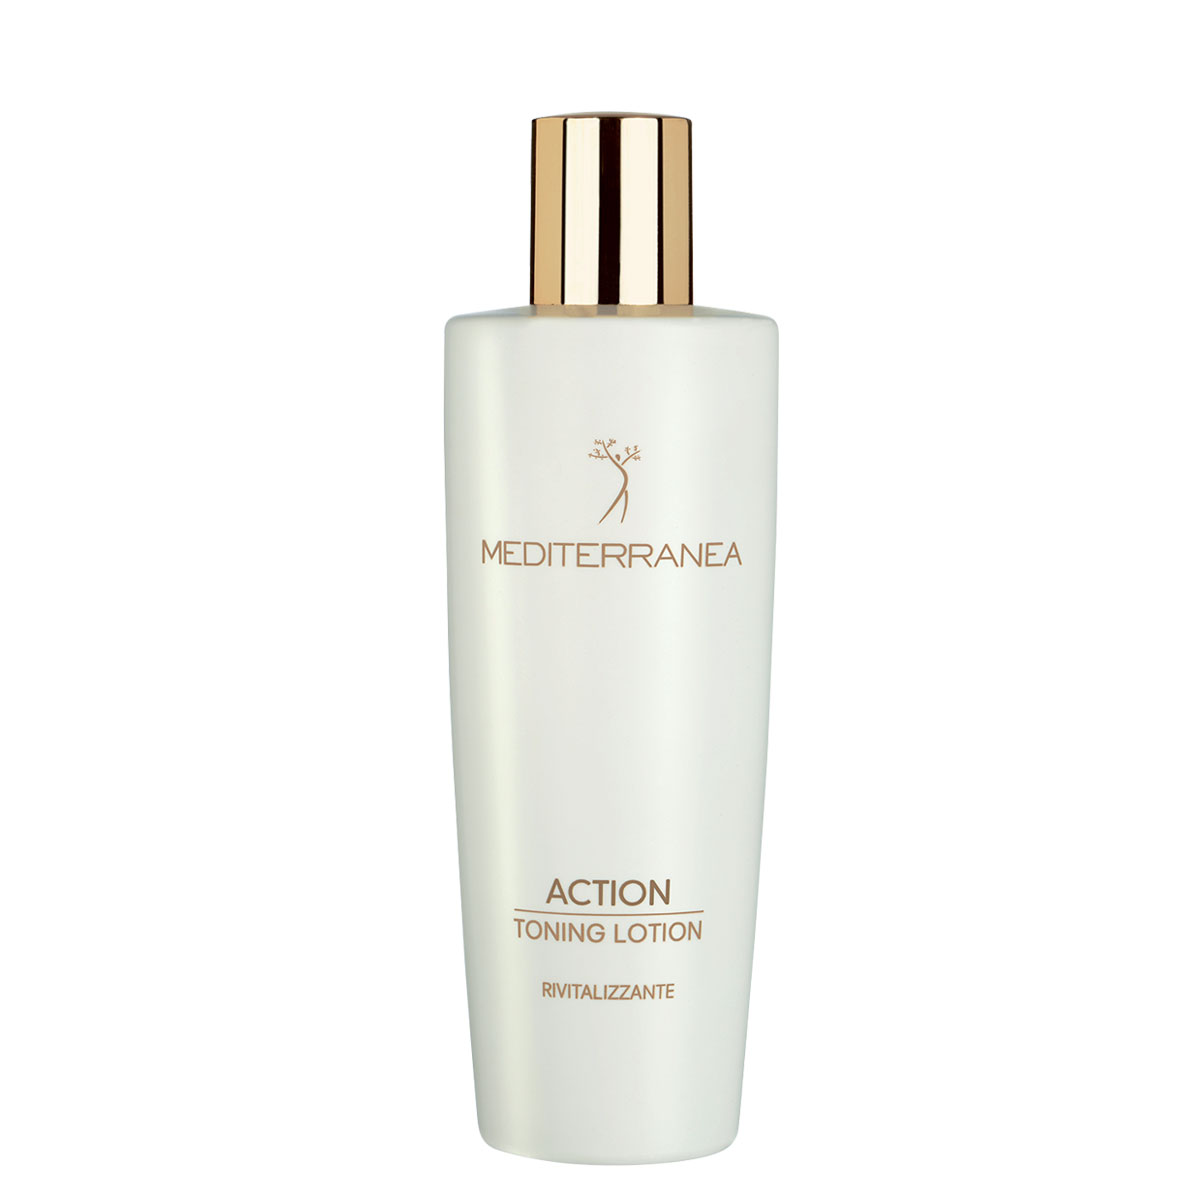 ACTION TONING LOTION